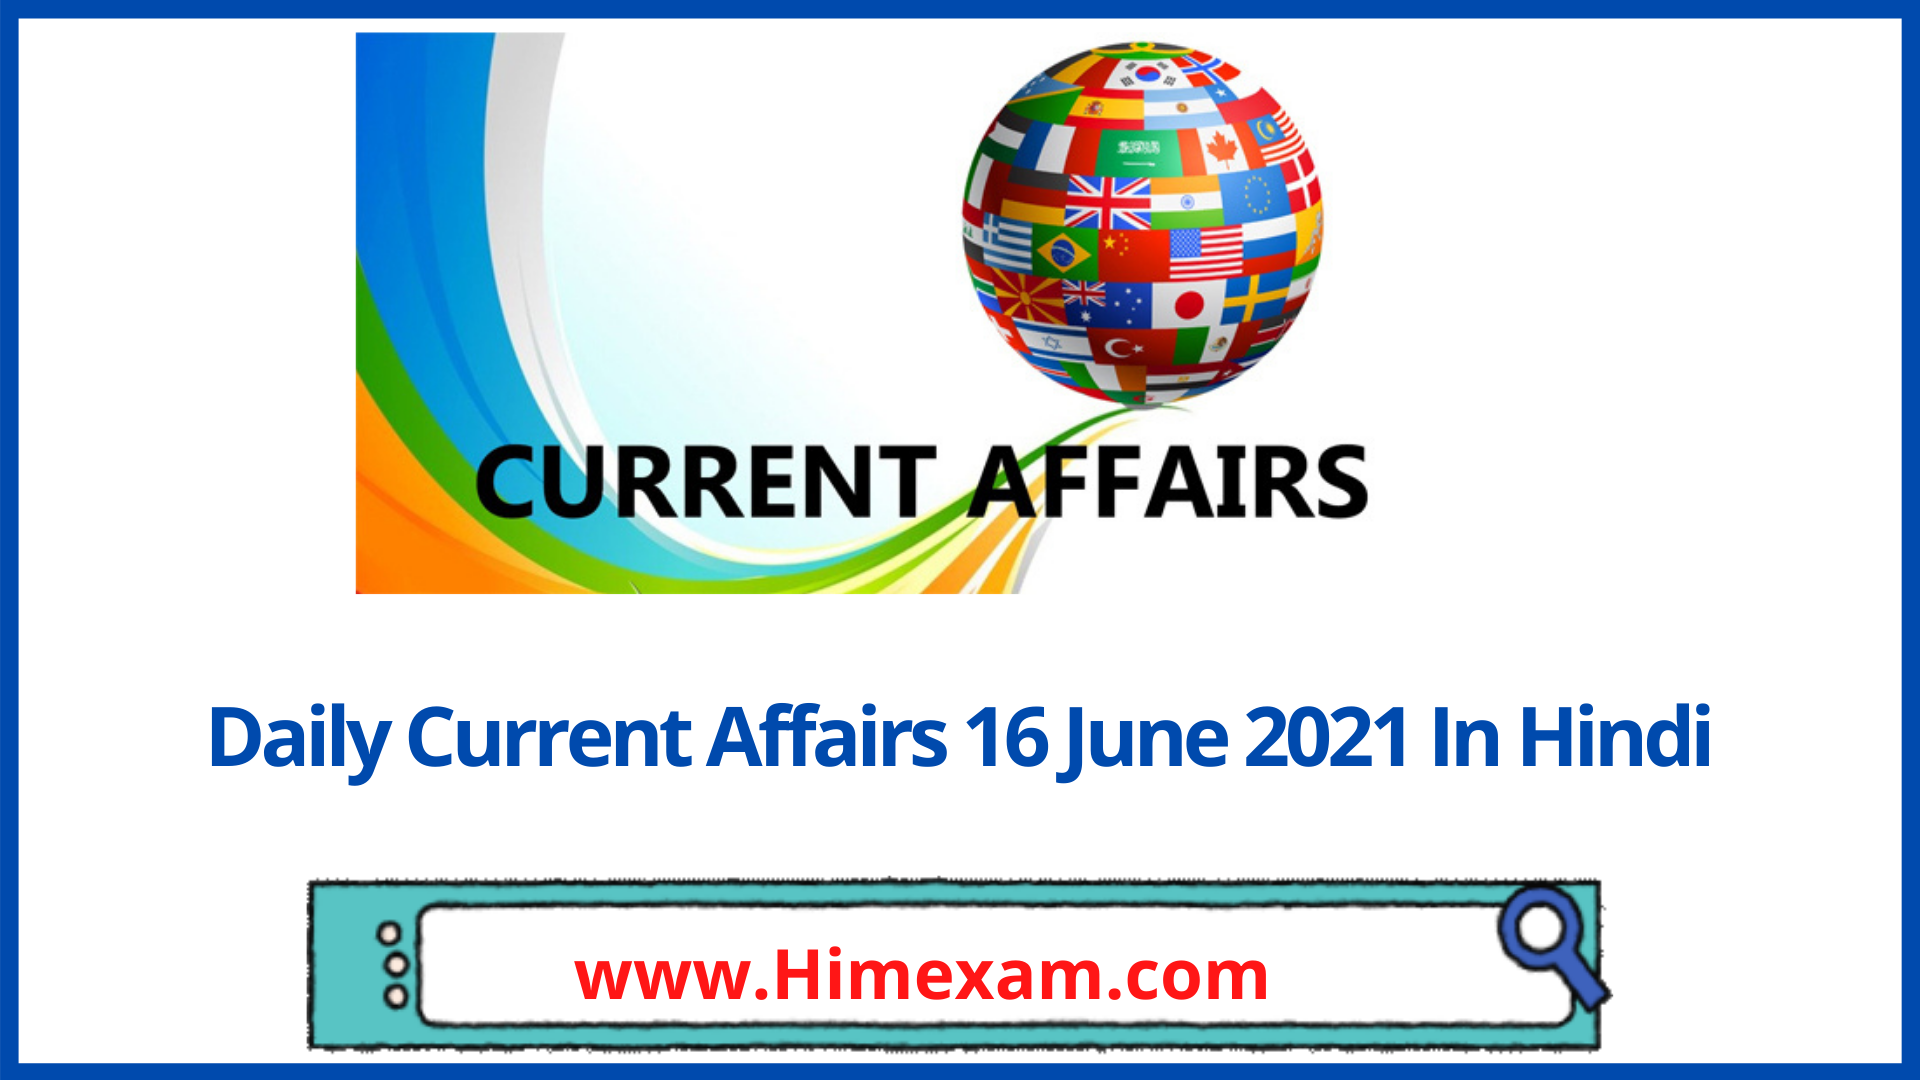 Daily Current Affairs 16 June 2021 In Hindi